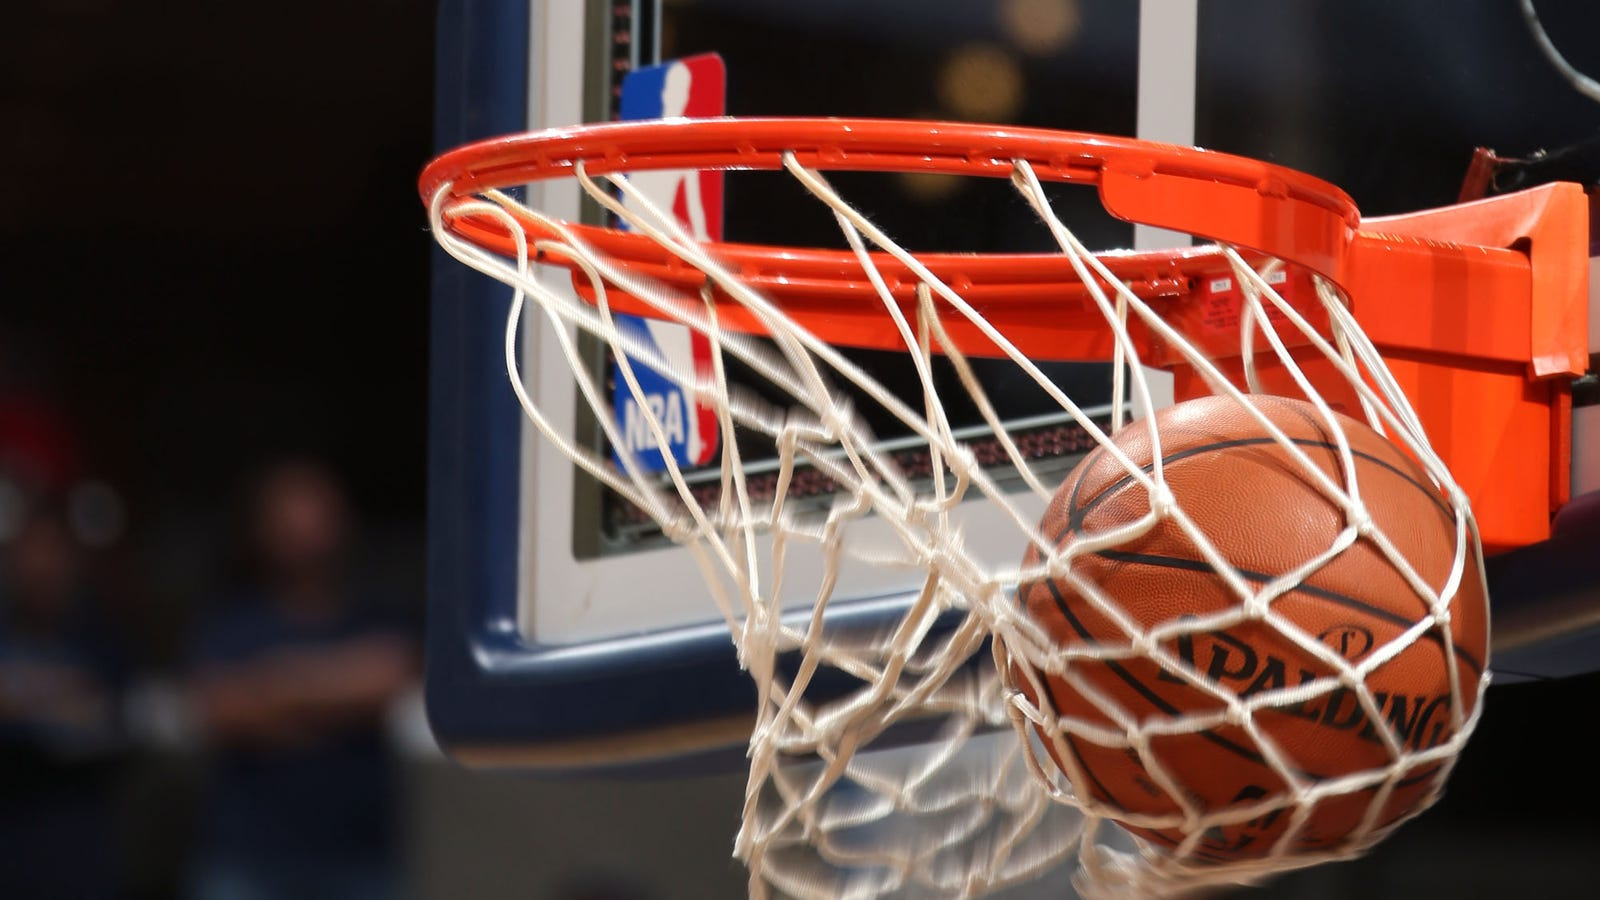 Best Part Is Going Through Hoop, Reports Basketball